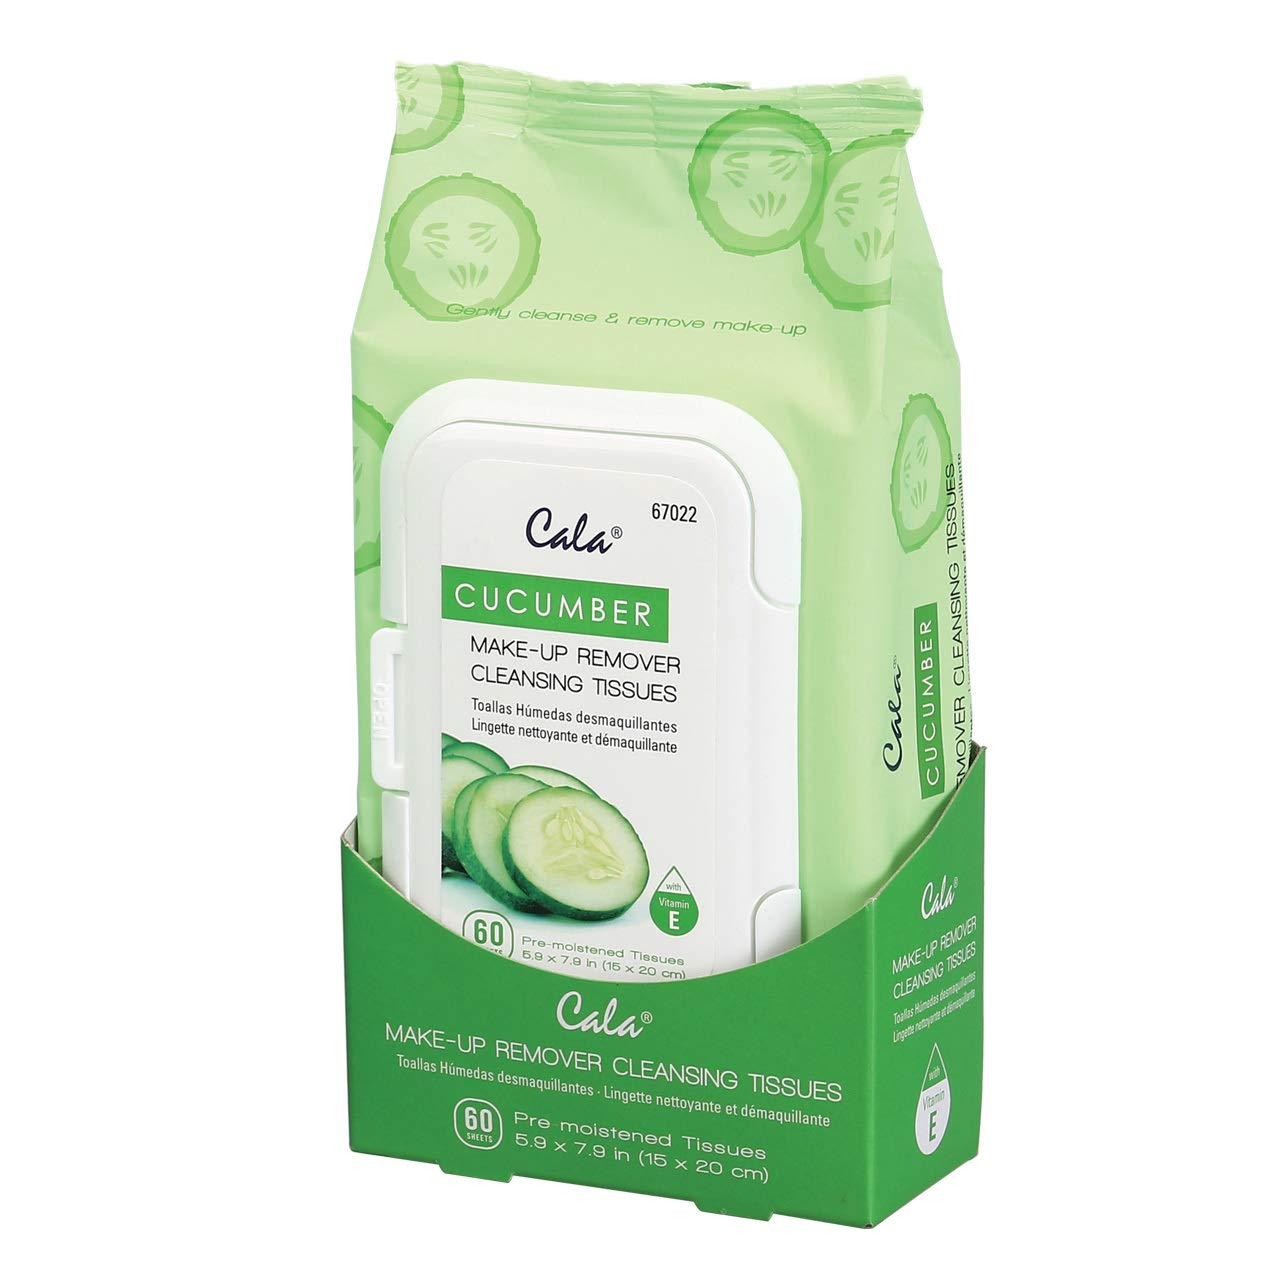 Cala Cucumber make-up remover cleansing tissues 60 count, 60 Count : Beauty & Personal Care